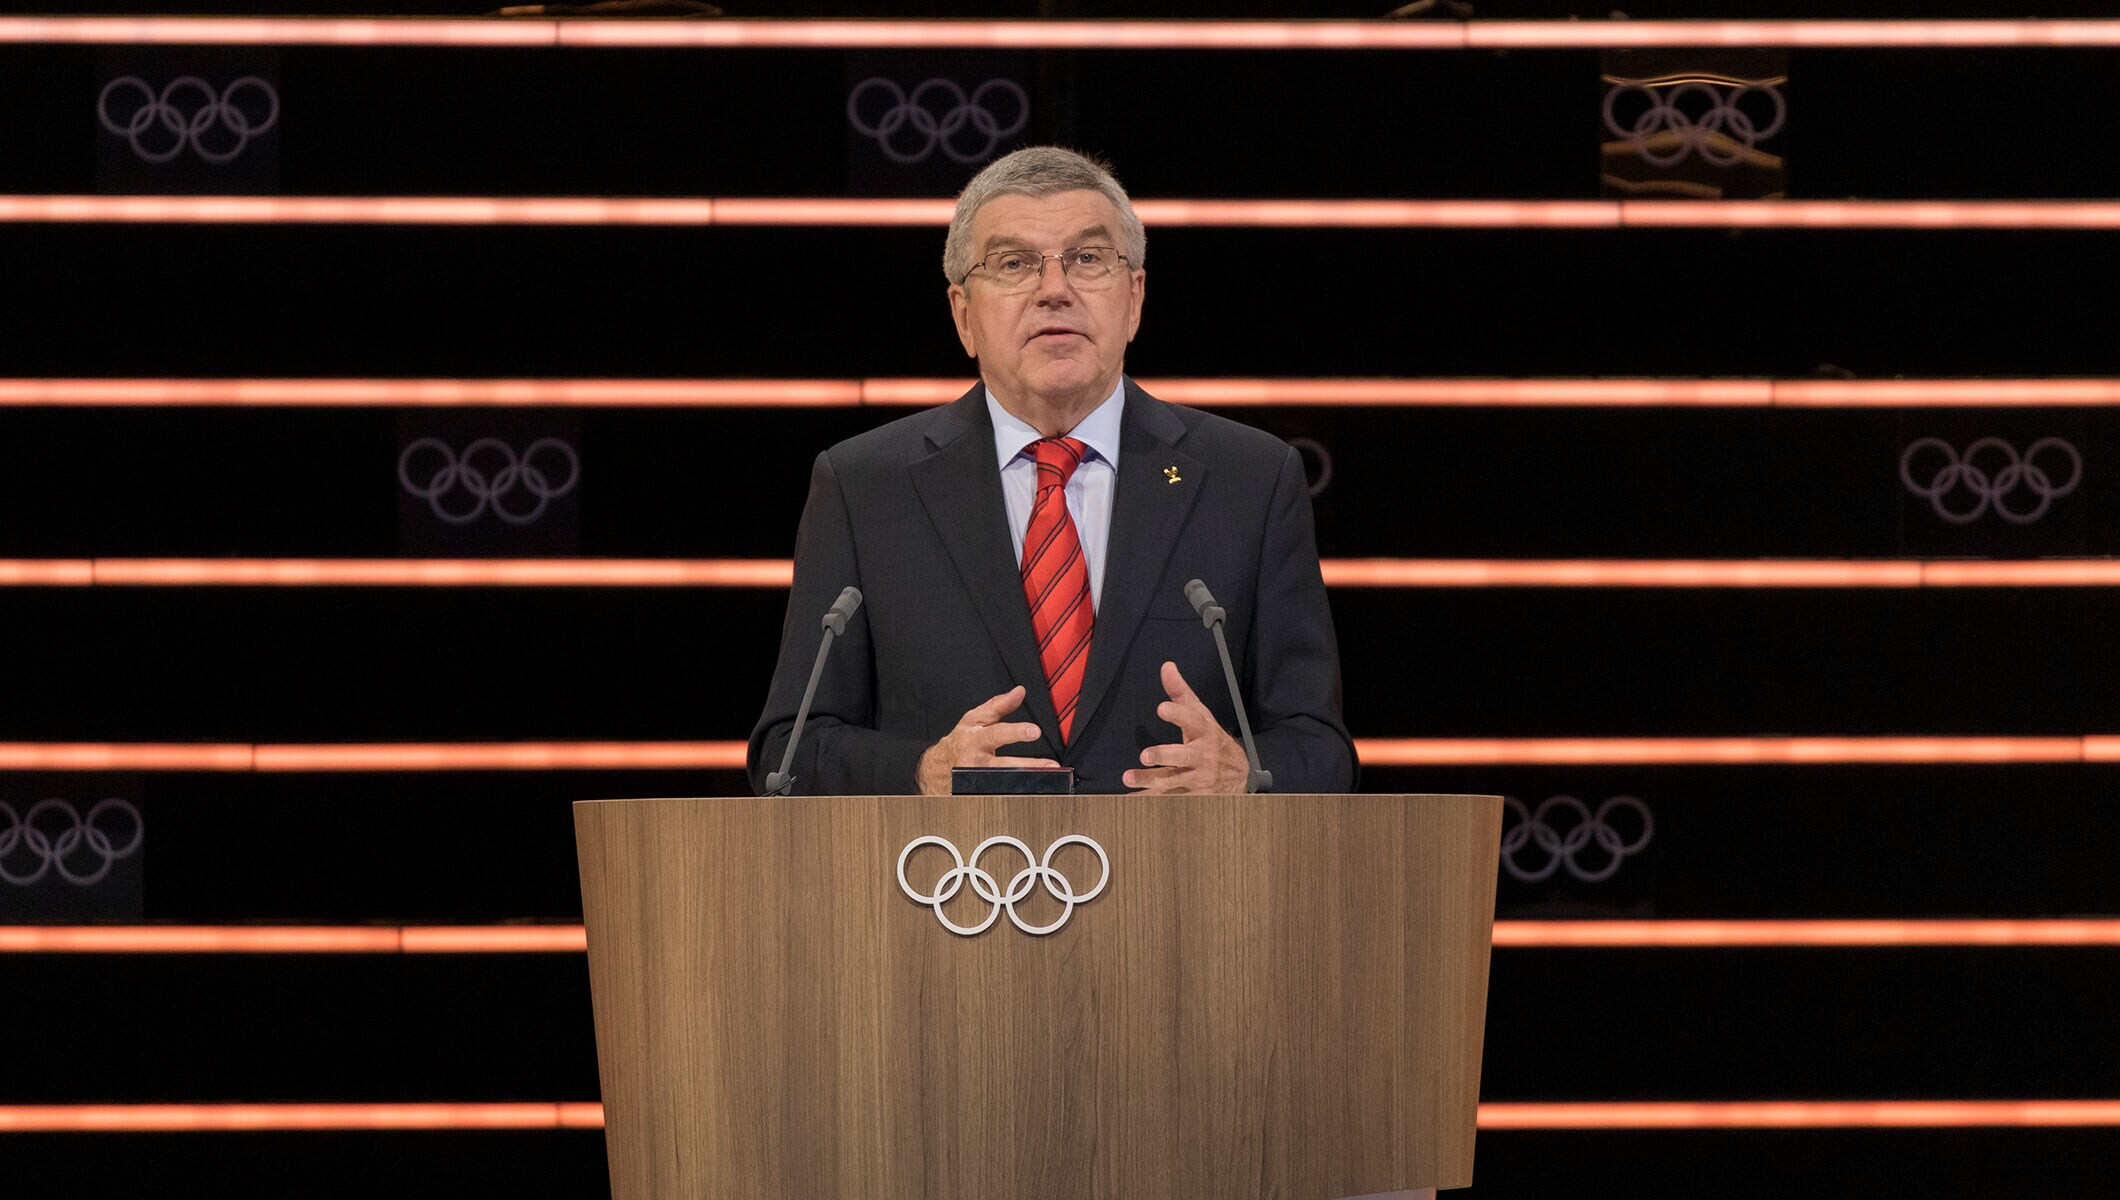 IOC President Thomas Bach at the 134th IOC Session in Lausanne